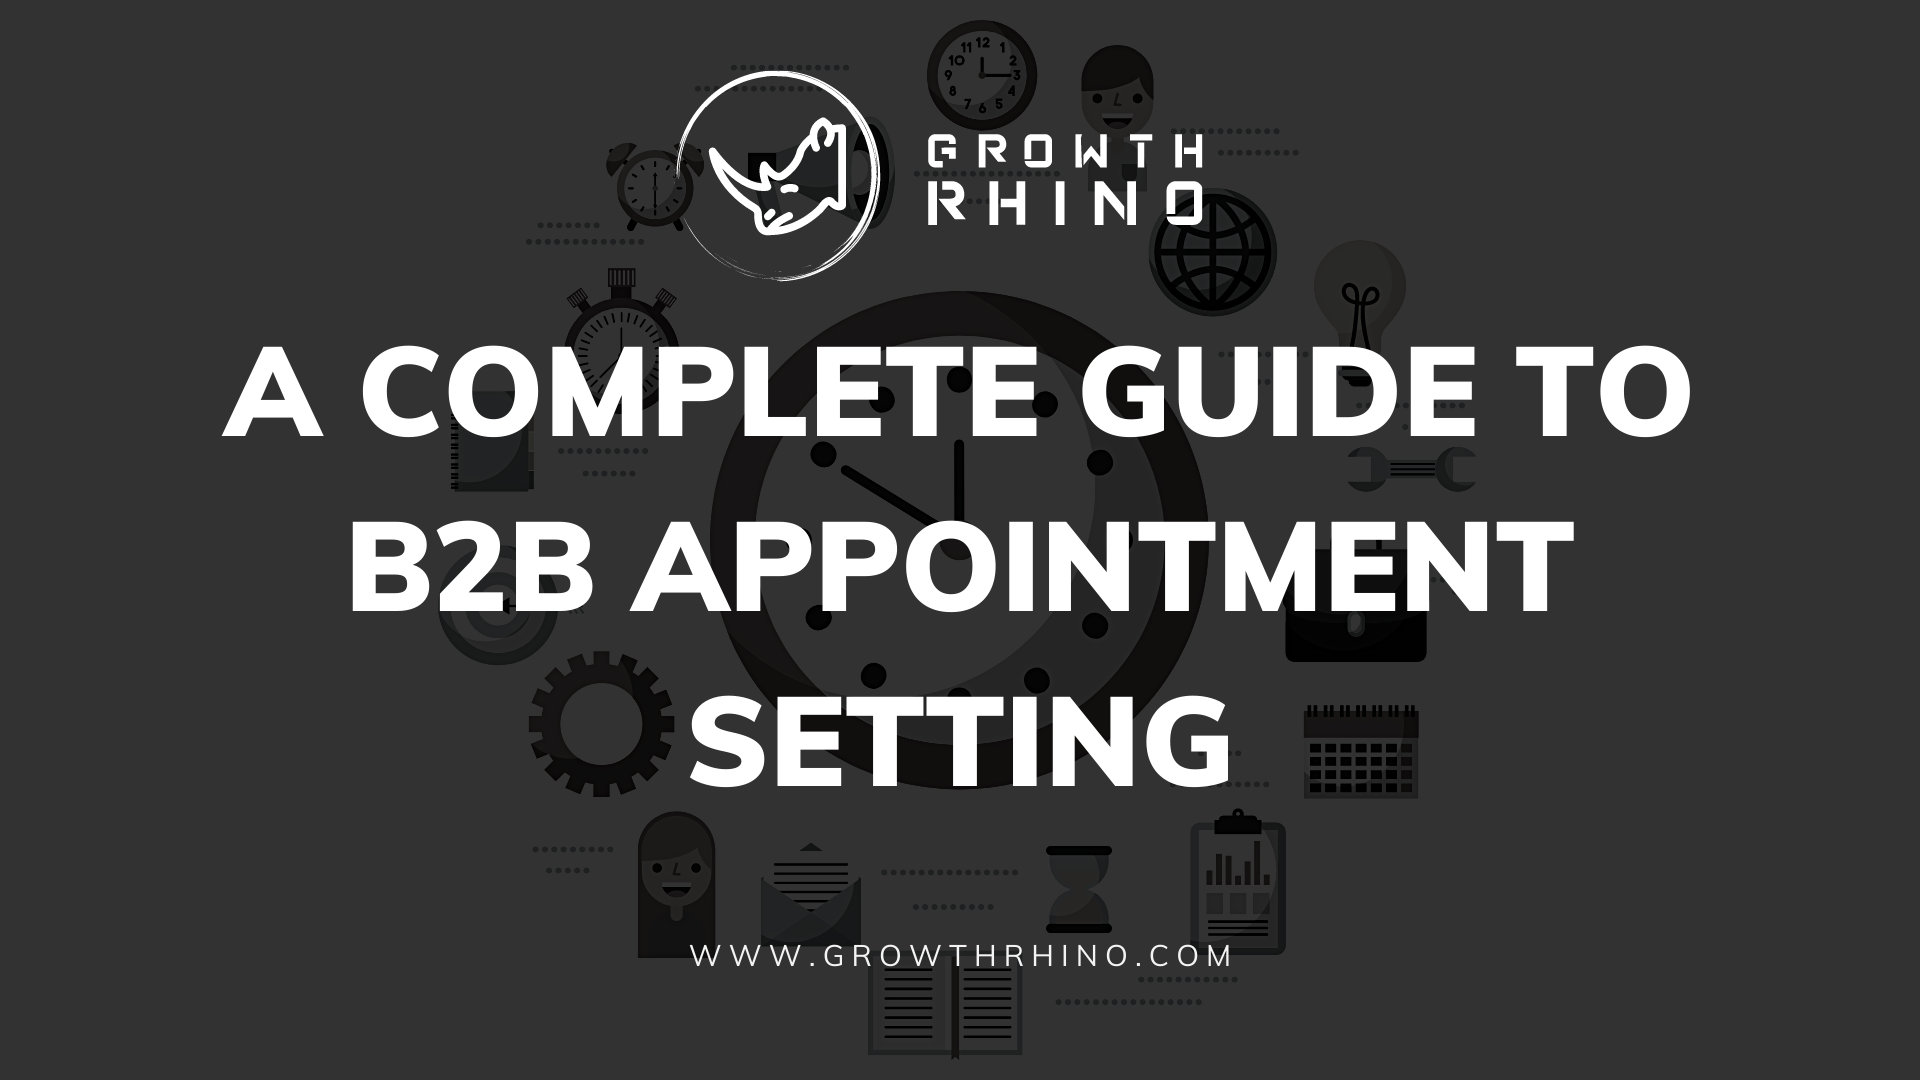 A Complete Guide to B2B Appointment Setting